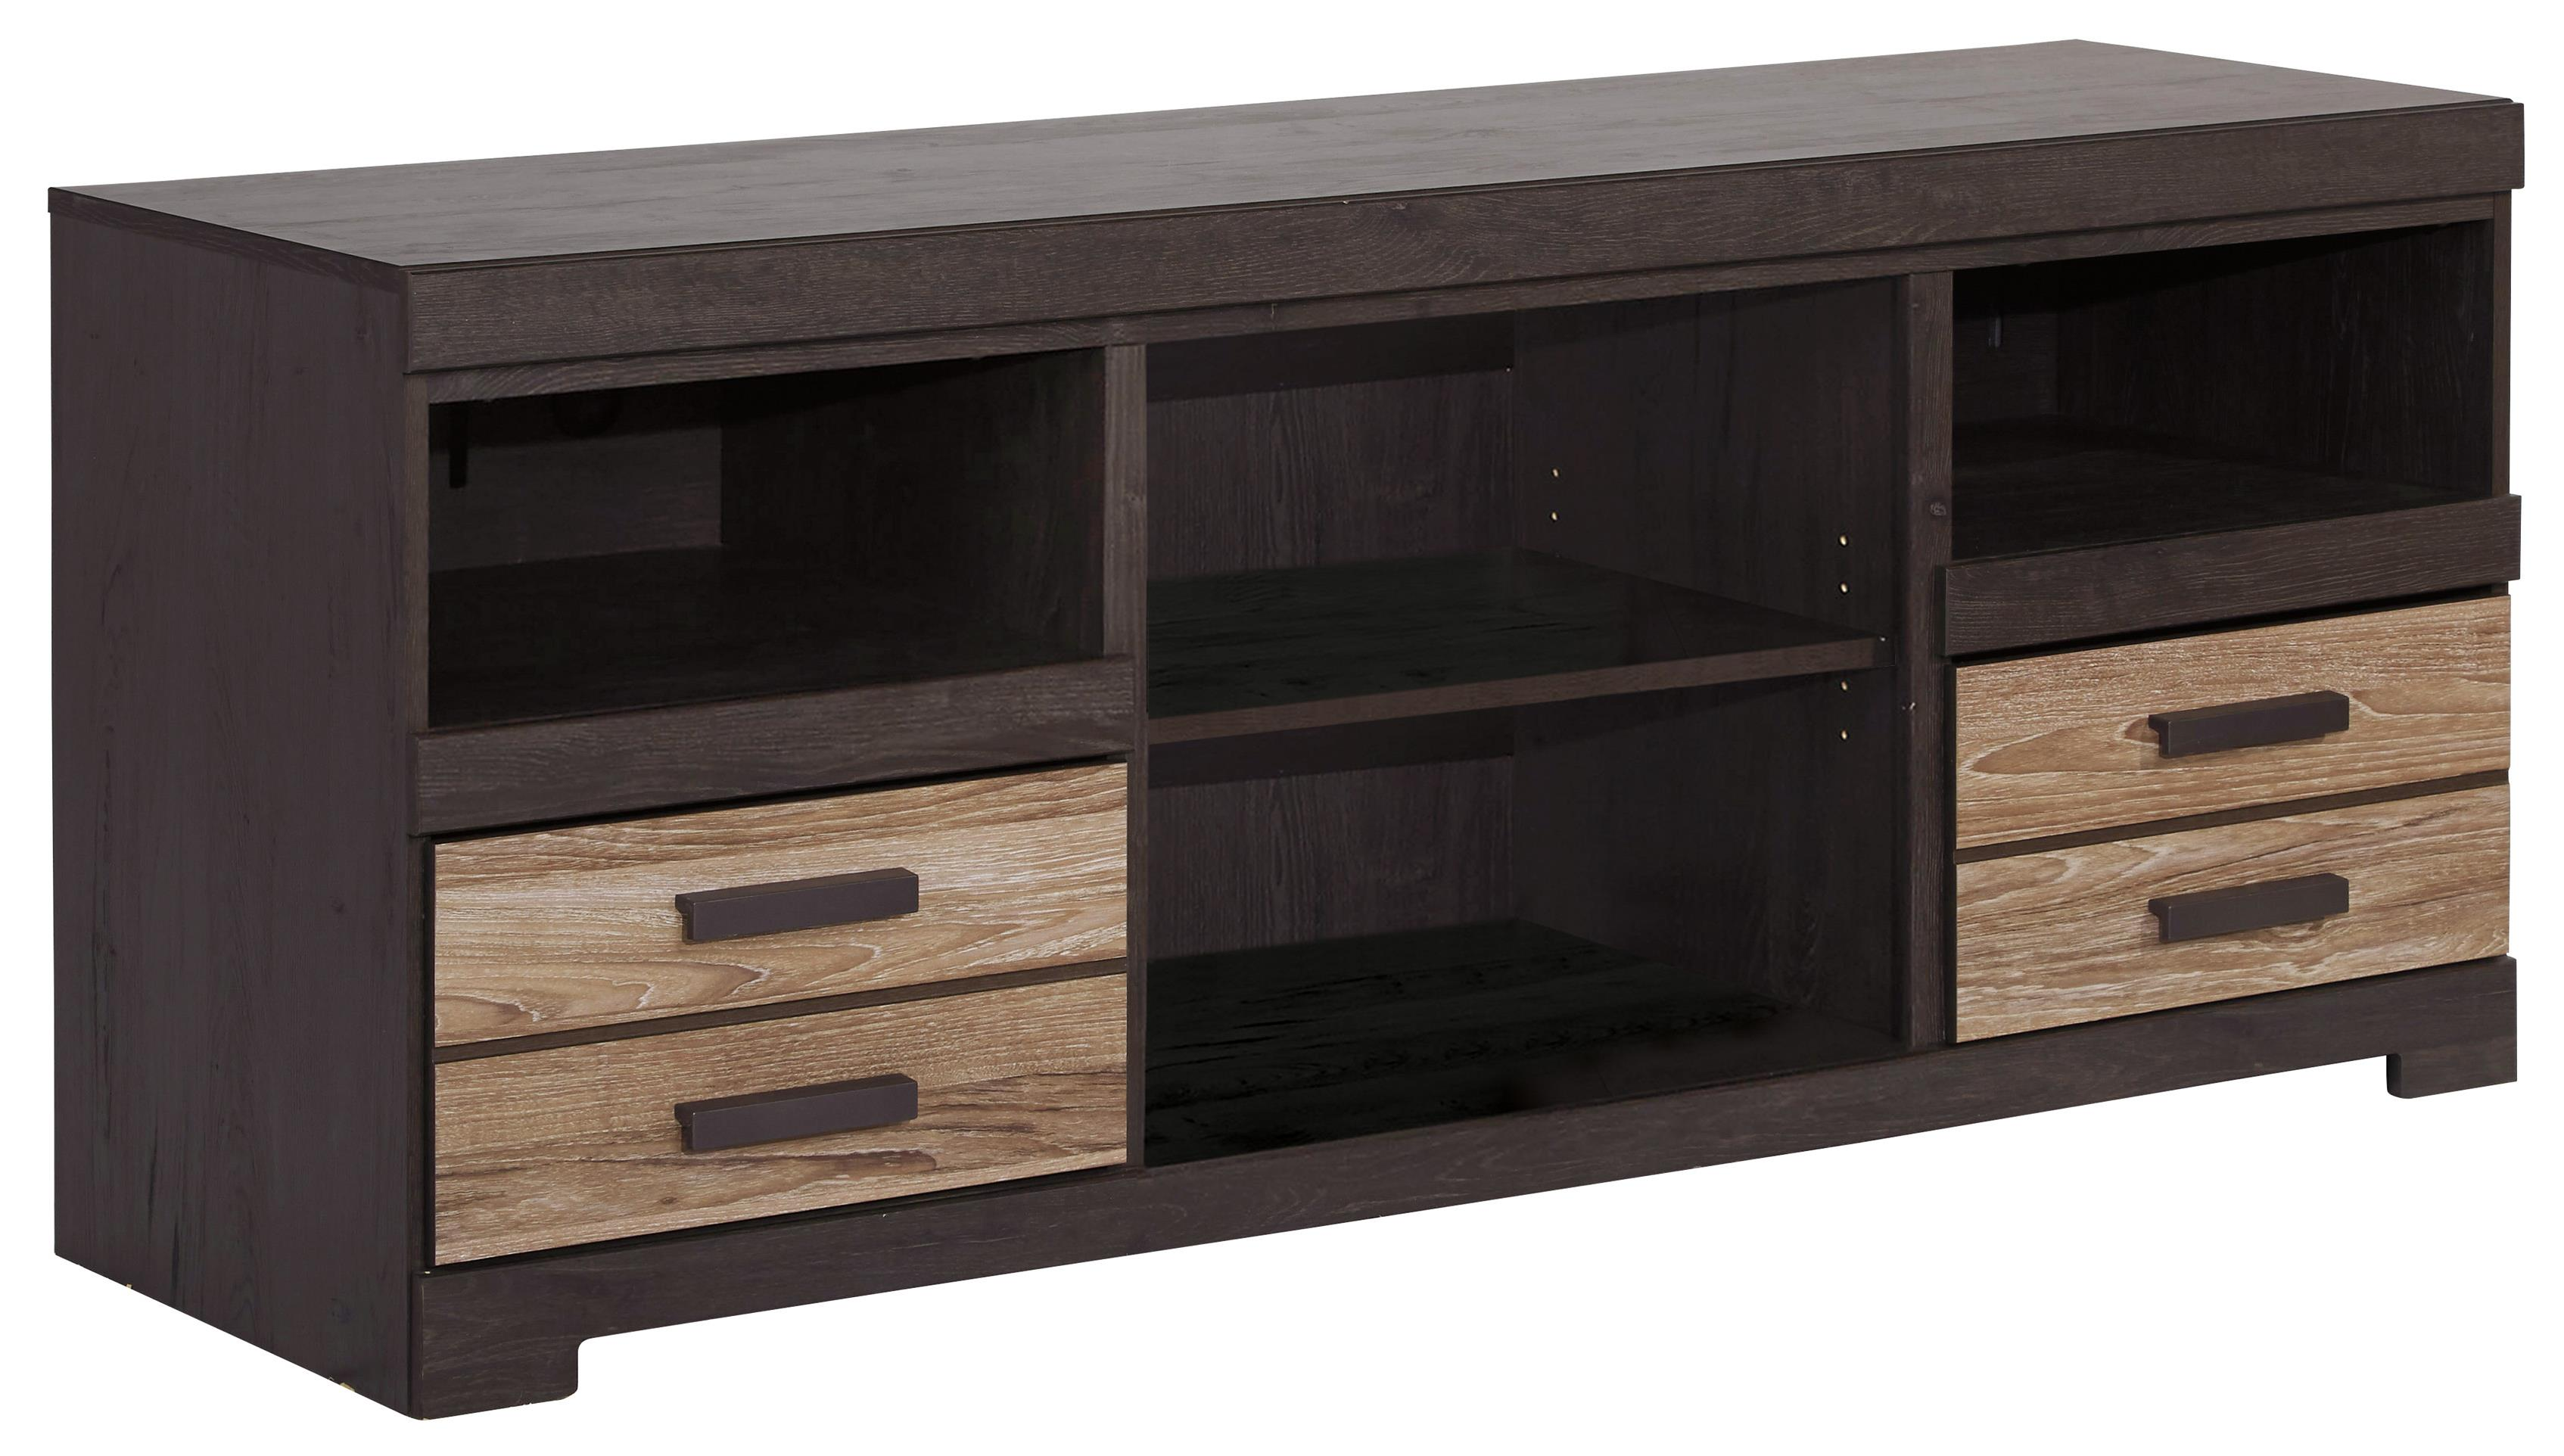 Harlinton Large TV Stand by Ashley (Signature Design) at Johnny Janosik